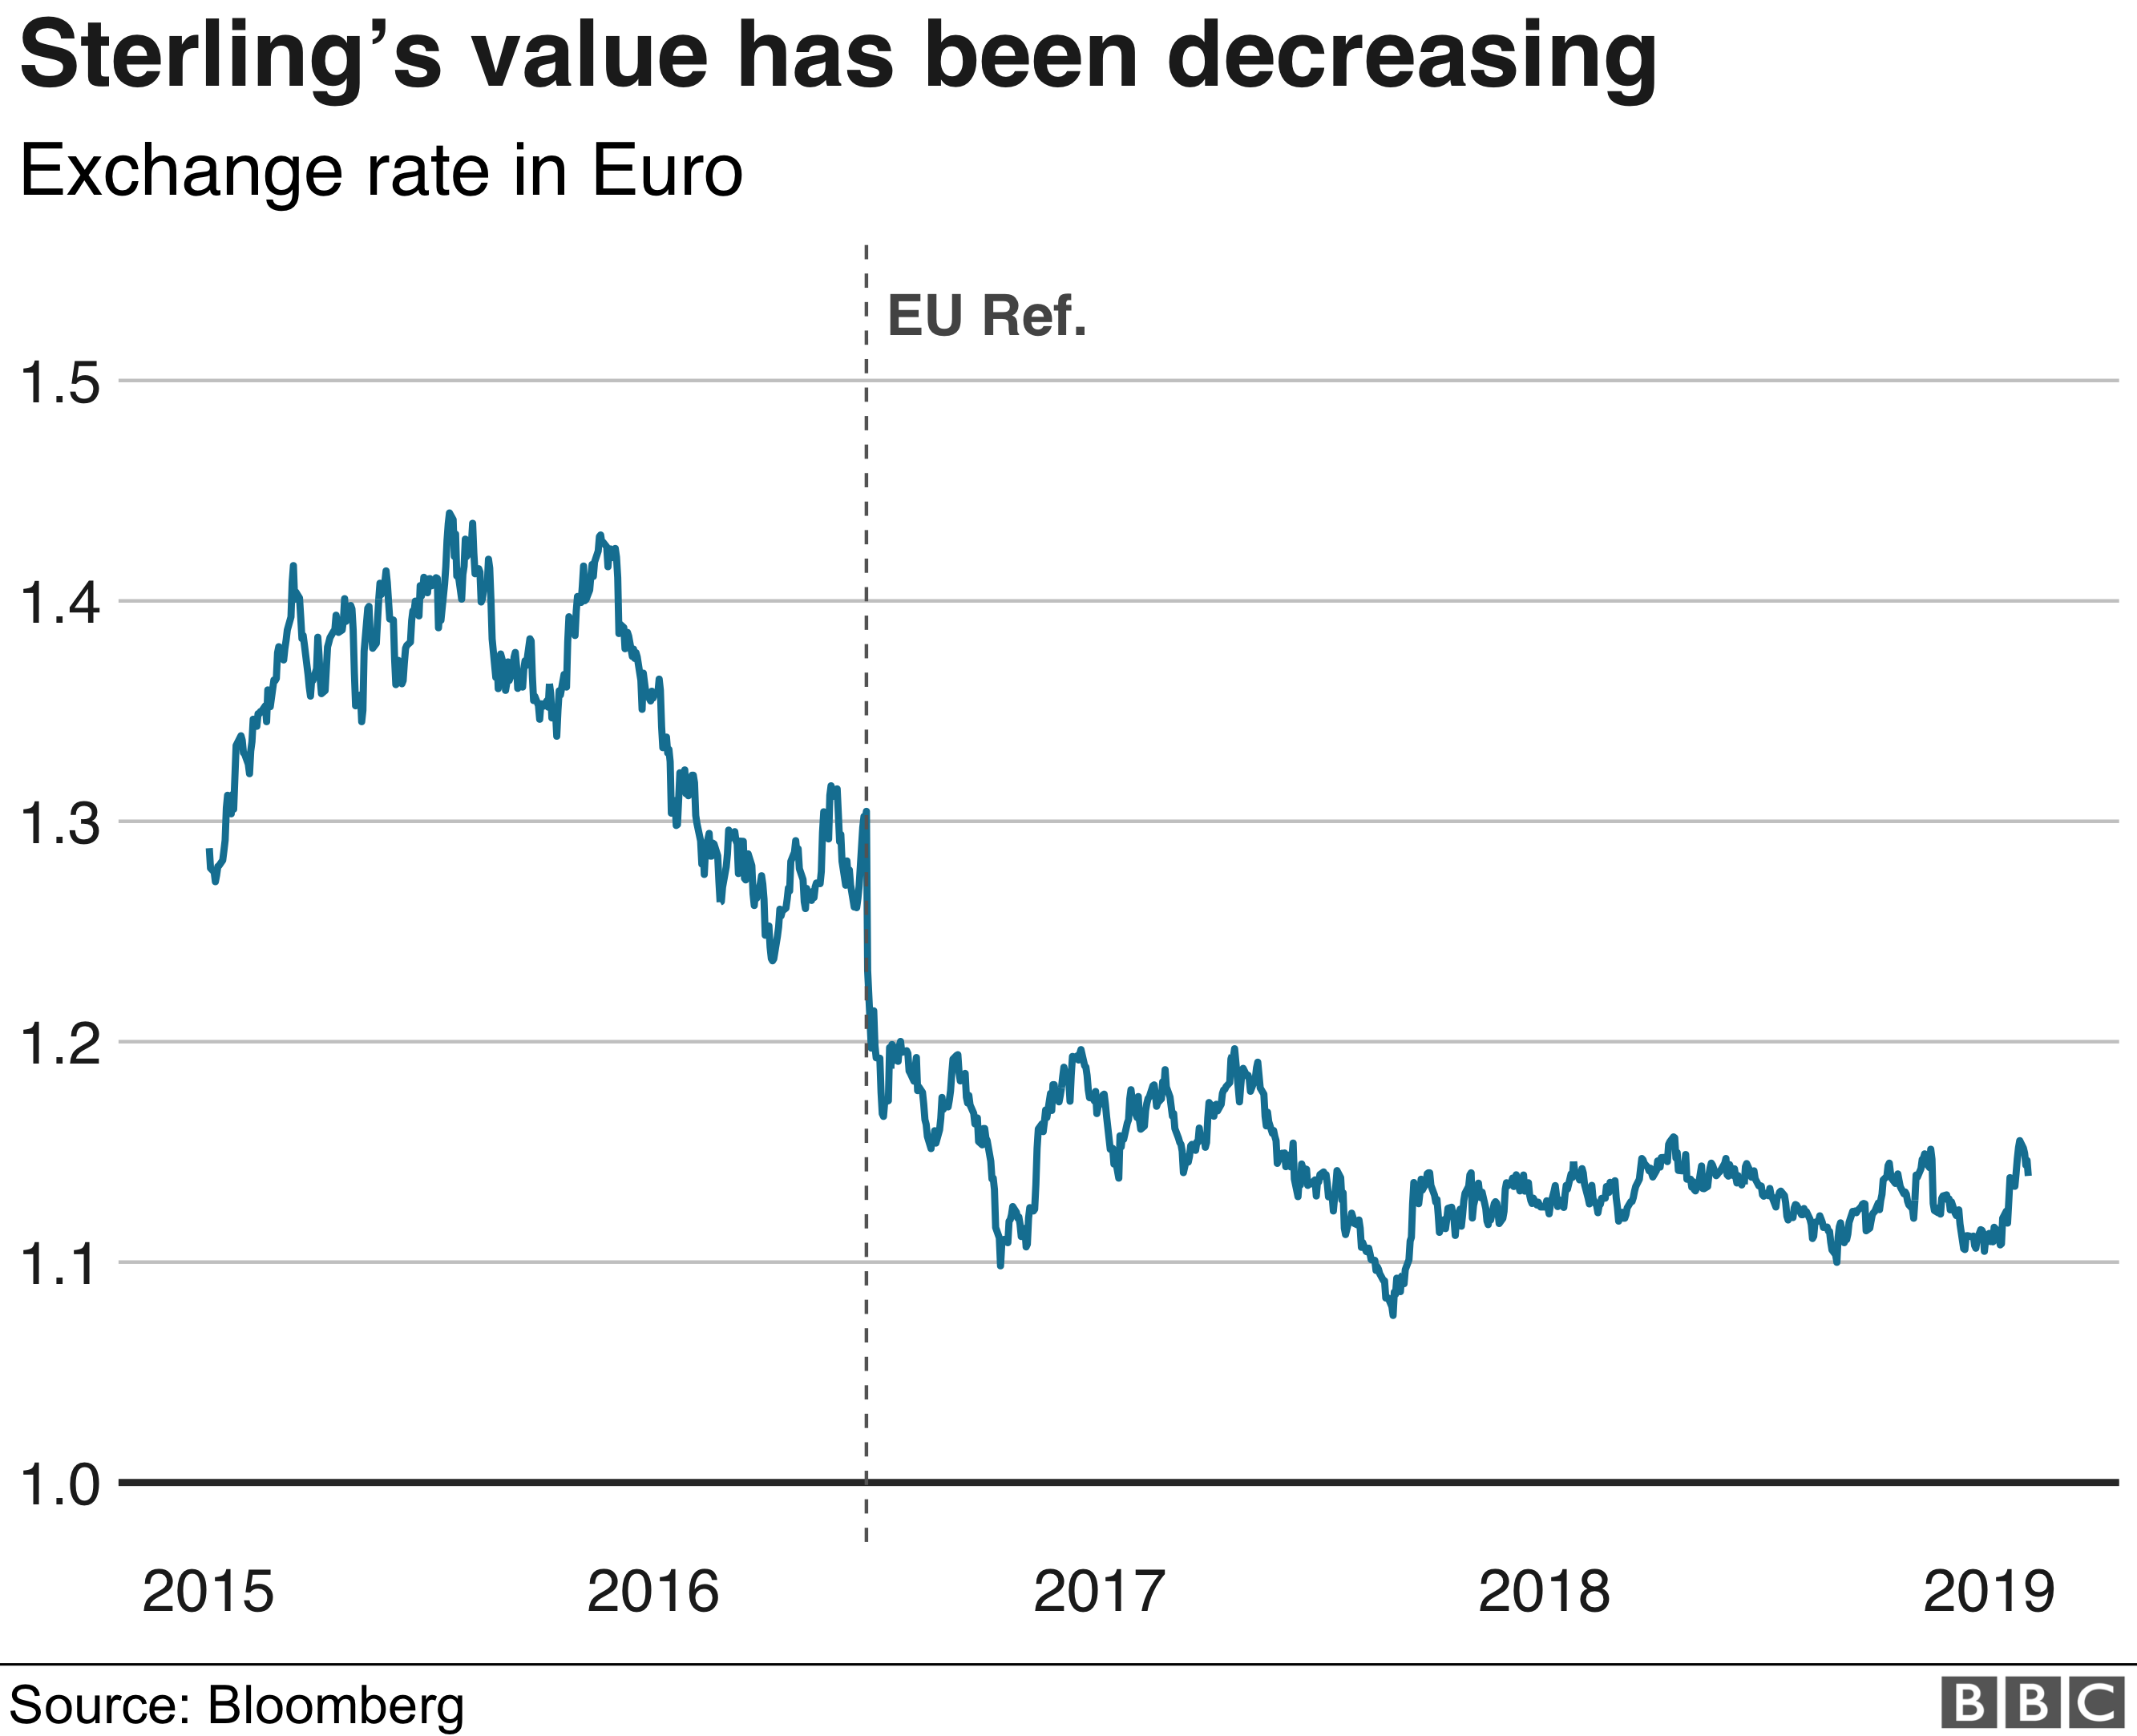 Chart showing the value of the exchange rate between GBP and EUR since 2015.